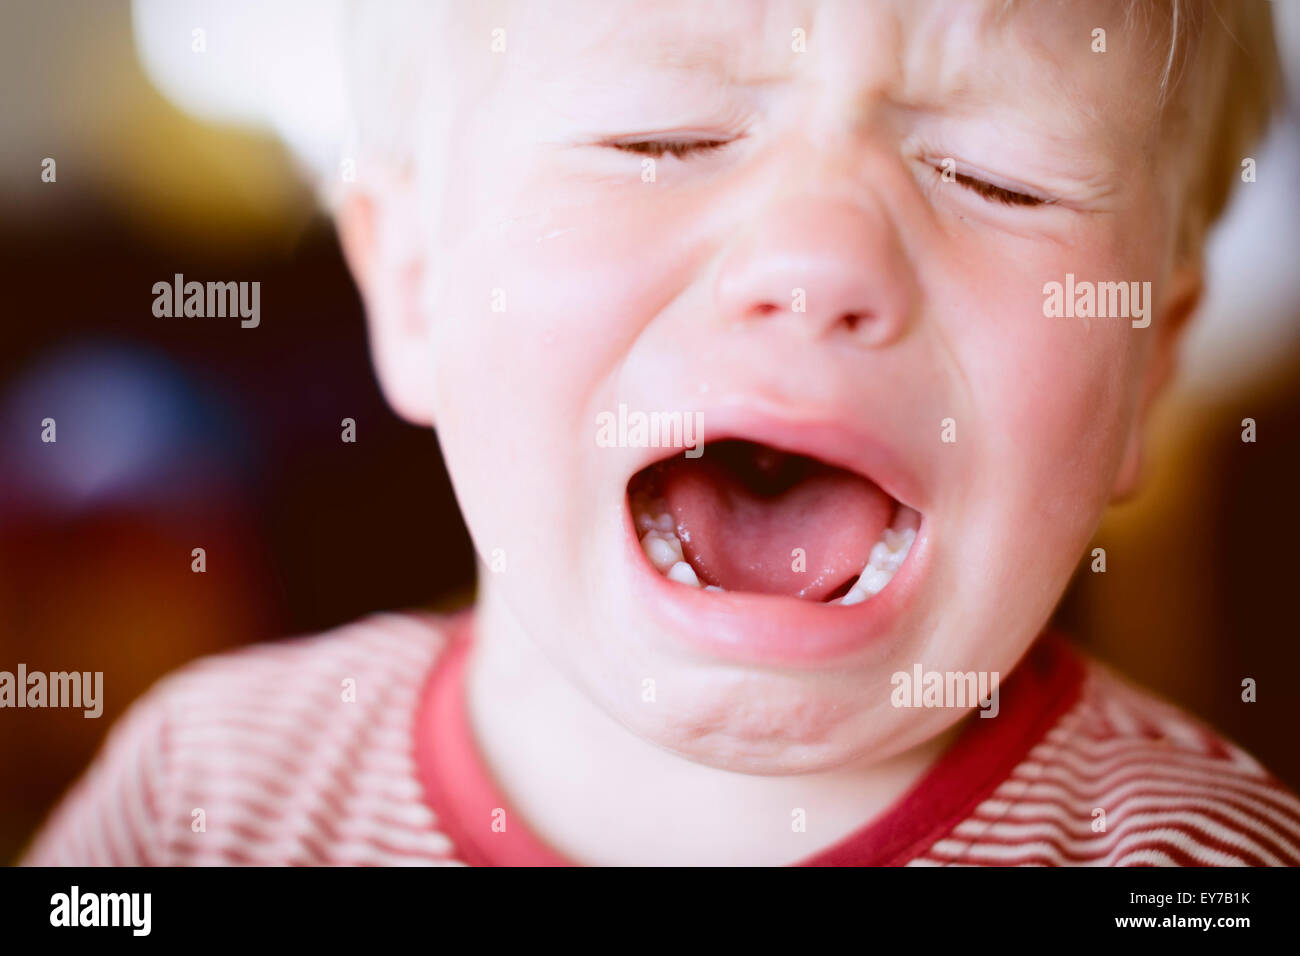 Young infant boy, 2 years, crying. - Stock Image